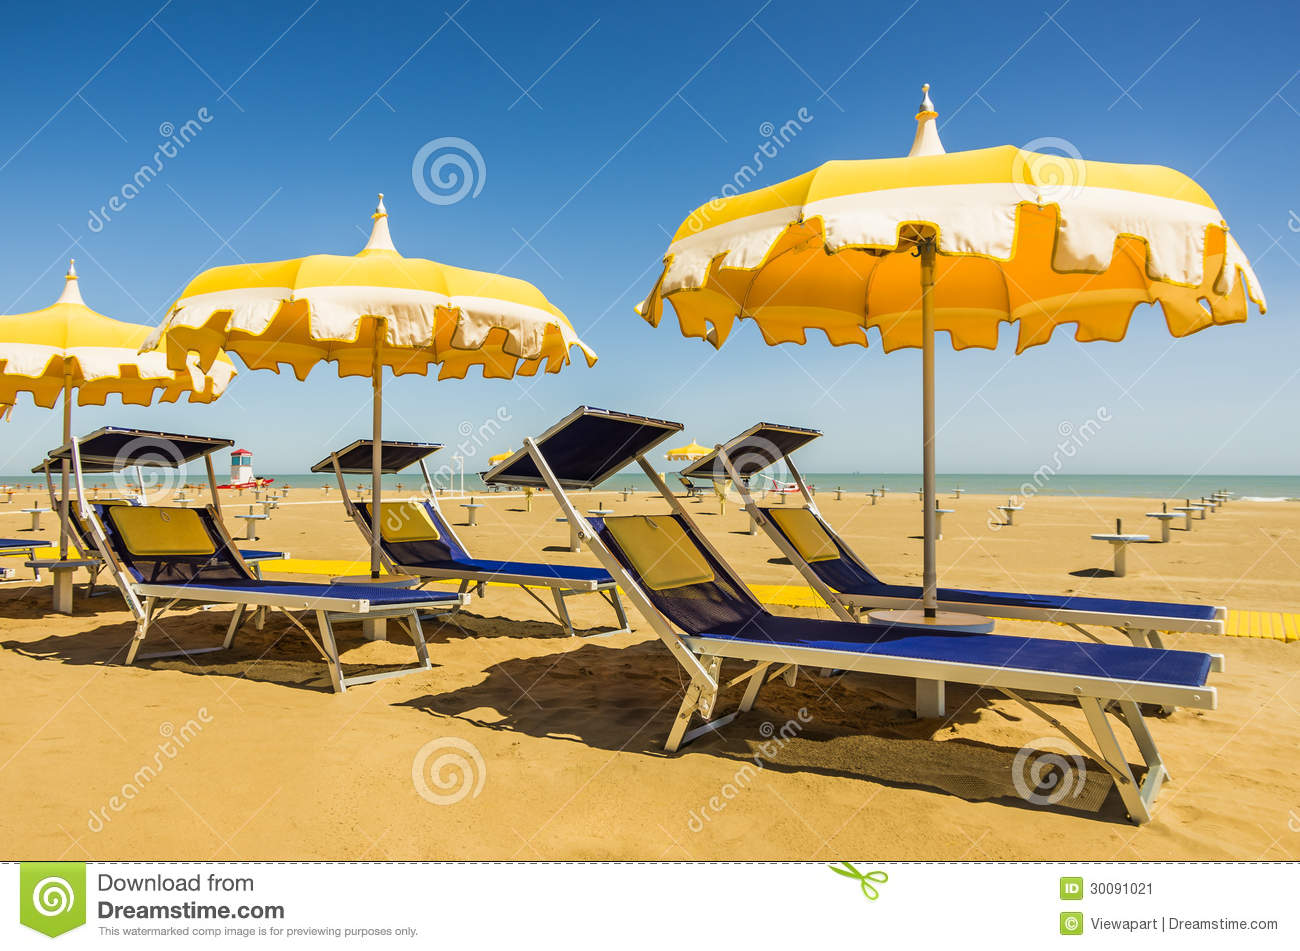 map of venice italy area with Stock Image Perpective Yellow Beach Umbrellas Blue Sunbeds Rimini Most Famous Italian Seaside Place Image30091021 on Postcodes Within A Radius in addition Royalty Free Stock Photography Venice Last Supper Christ Ultima Cena Girolamo Da Santacroce Italy March Church San Francesco Della Vigna Image40370177 additionally Airbus Plans Install Seats A380 furthermore Stock Photos Majestic Monument Vittoriano Called Altare Della Patria Rome Image34495323 in addition 183310647305272701.